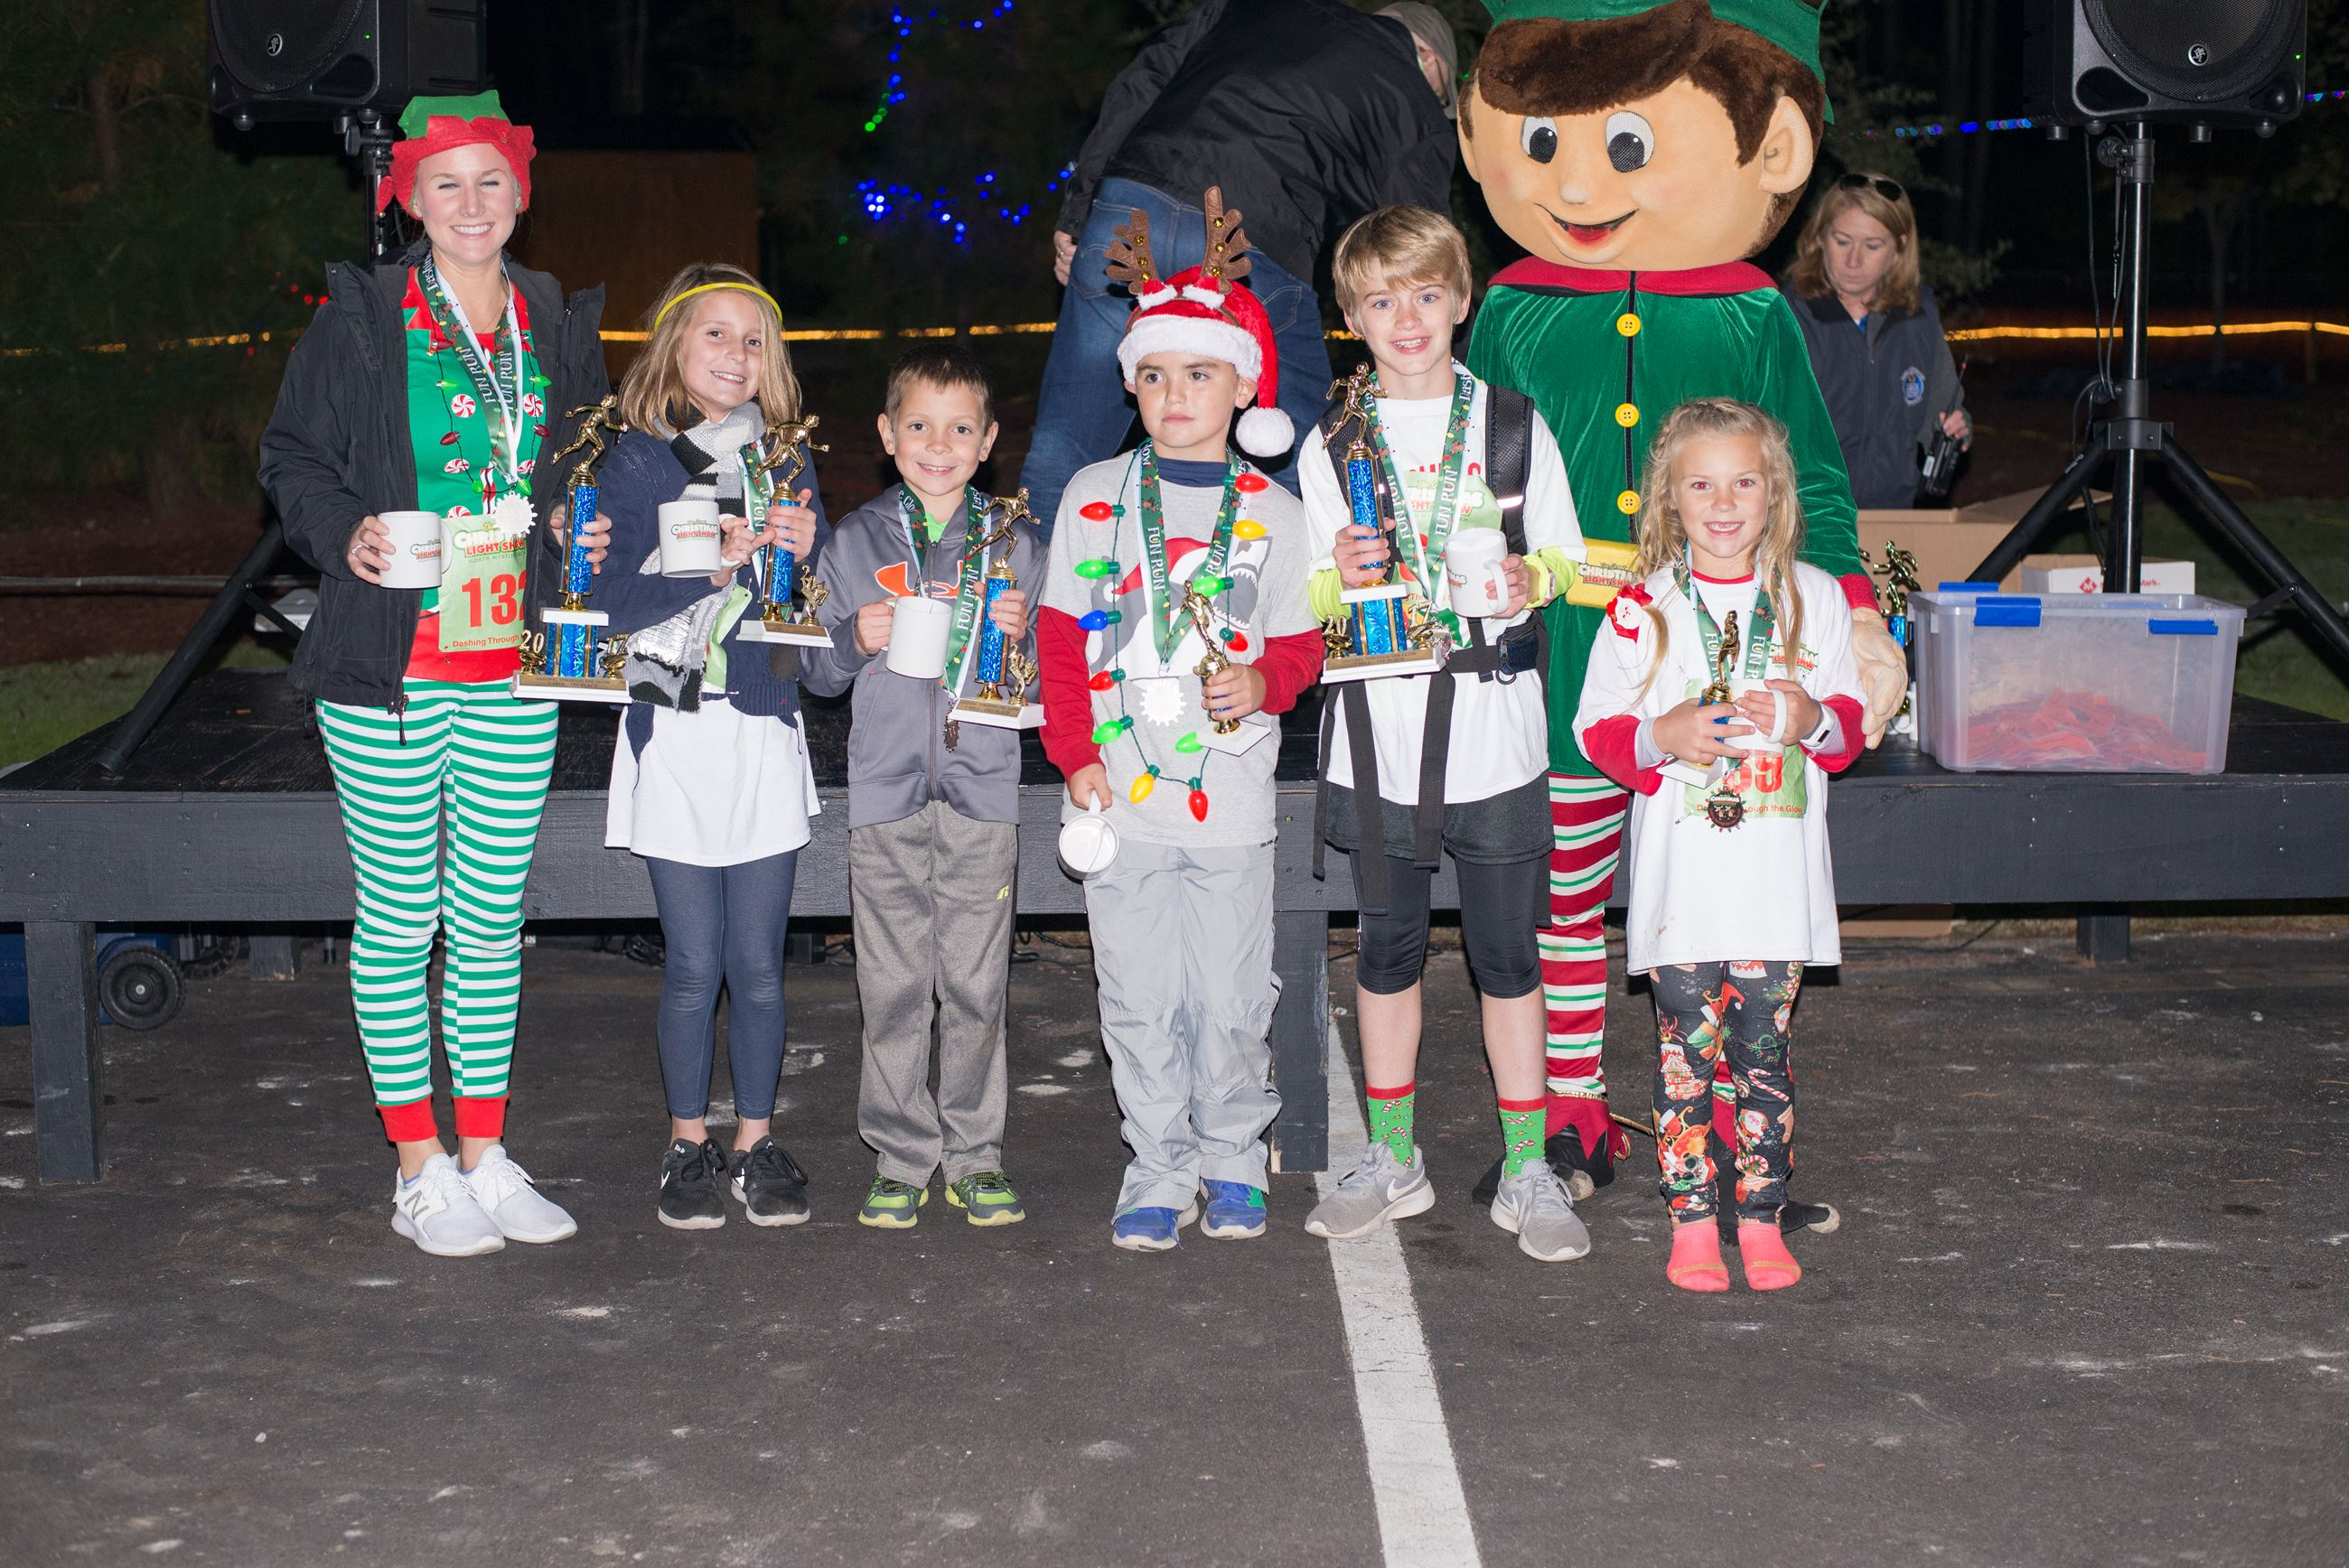 Kids Holding Trophies in Christmas Outfits